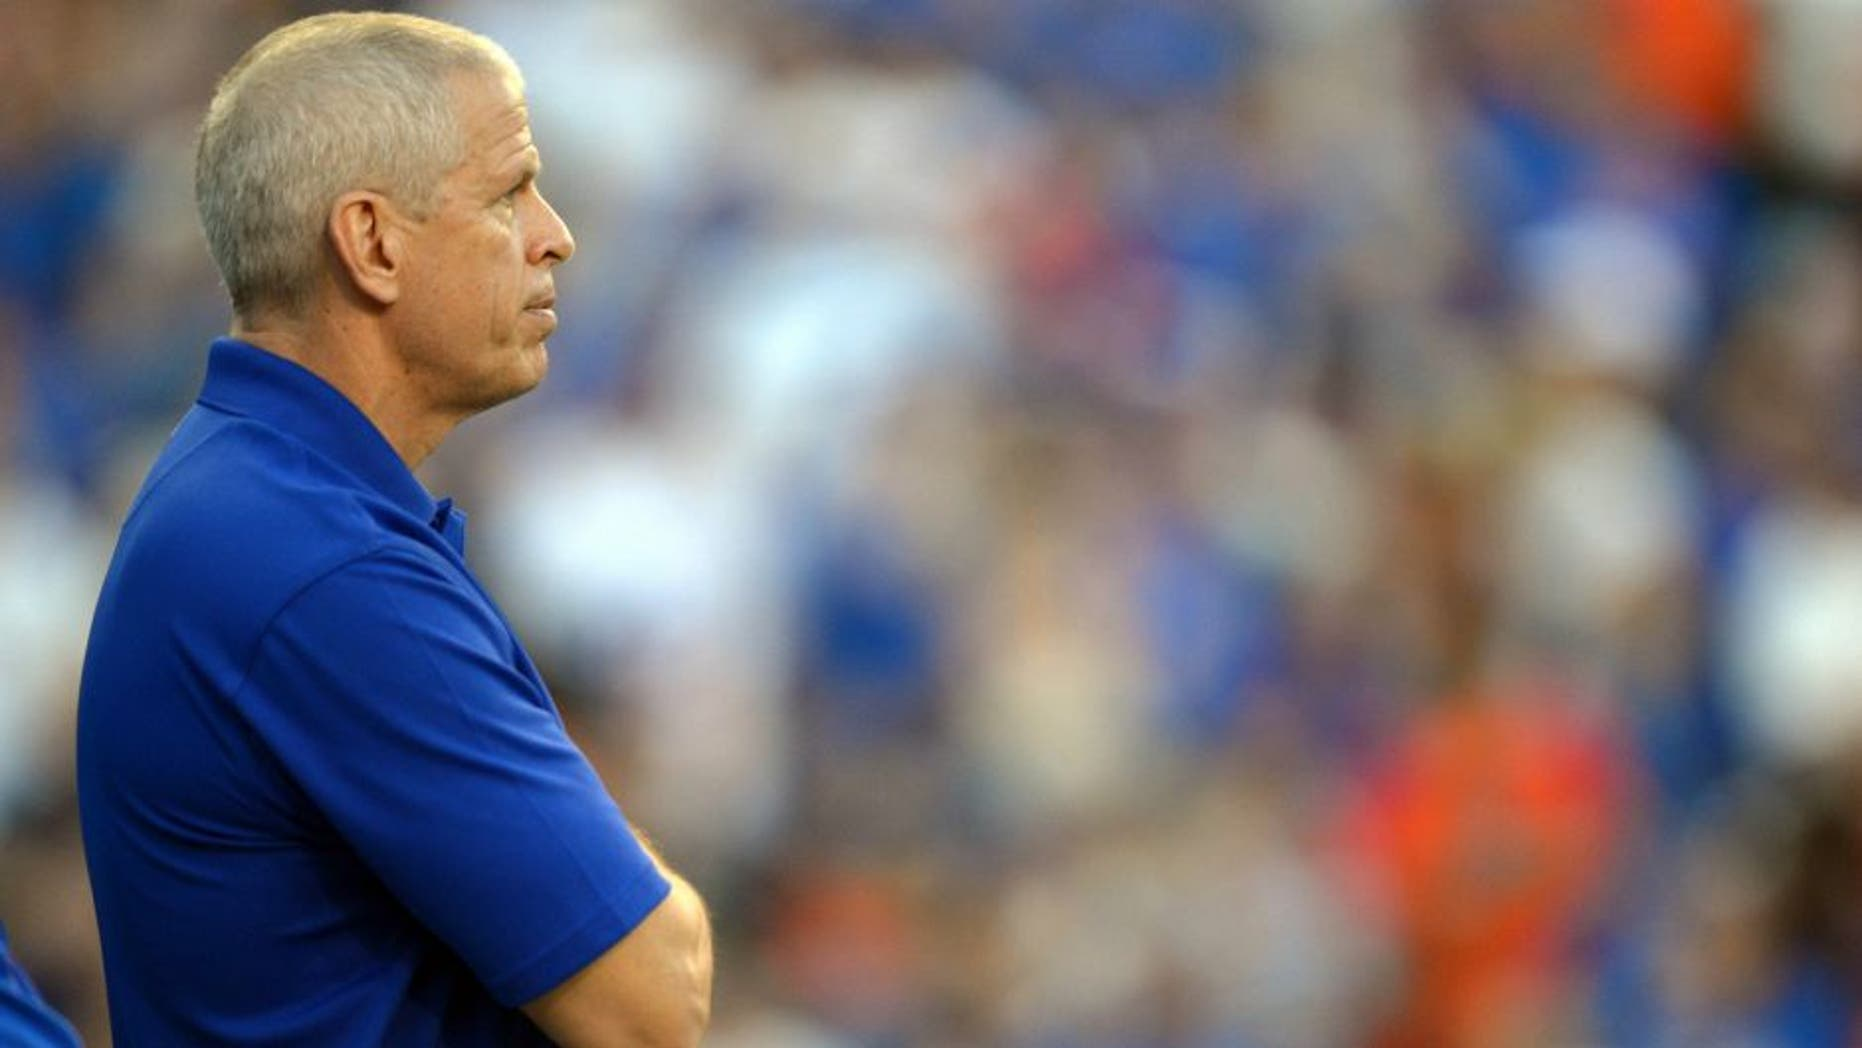 Oct 6, 2012; Gainesville, FL, USA; Florida Gators atheletic director Jeremy Foley during the fourth quarter against the LSU Tigers at Ben Hill Griffin Stadium. Mandatory Credit: Jake Roth-USA TODAY Sports